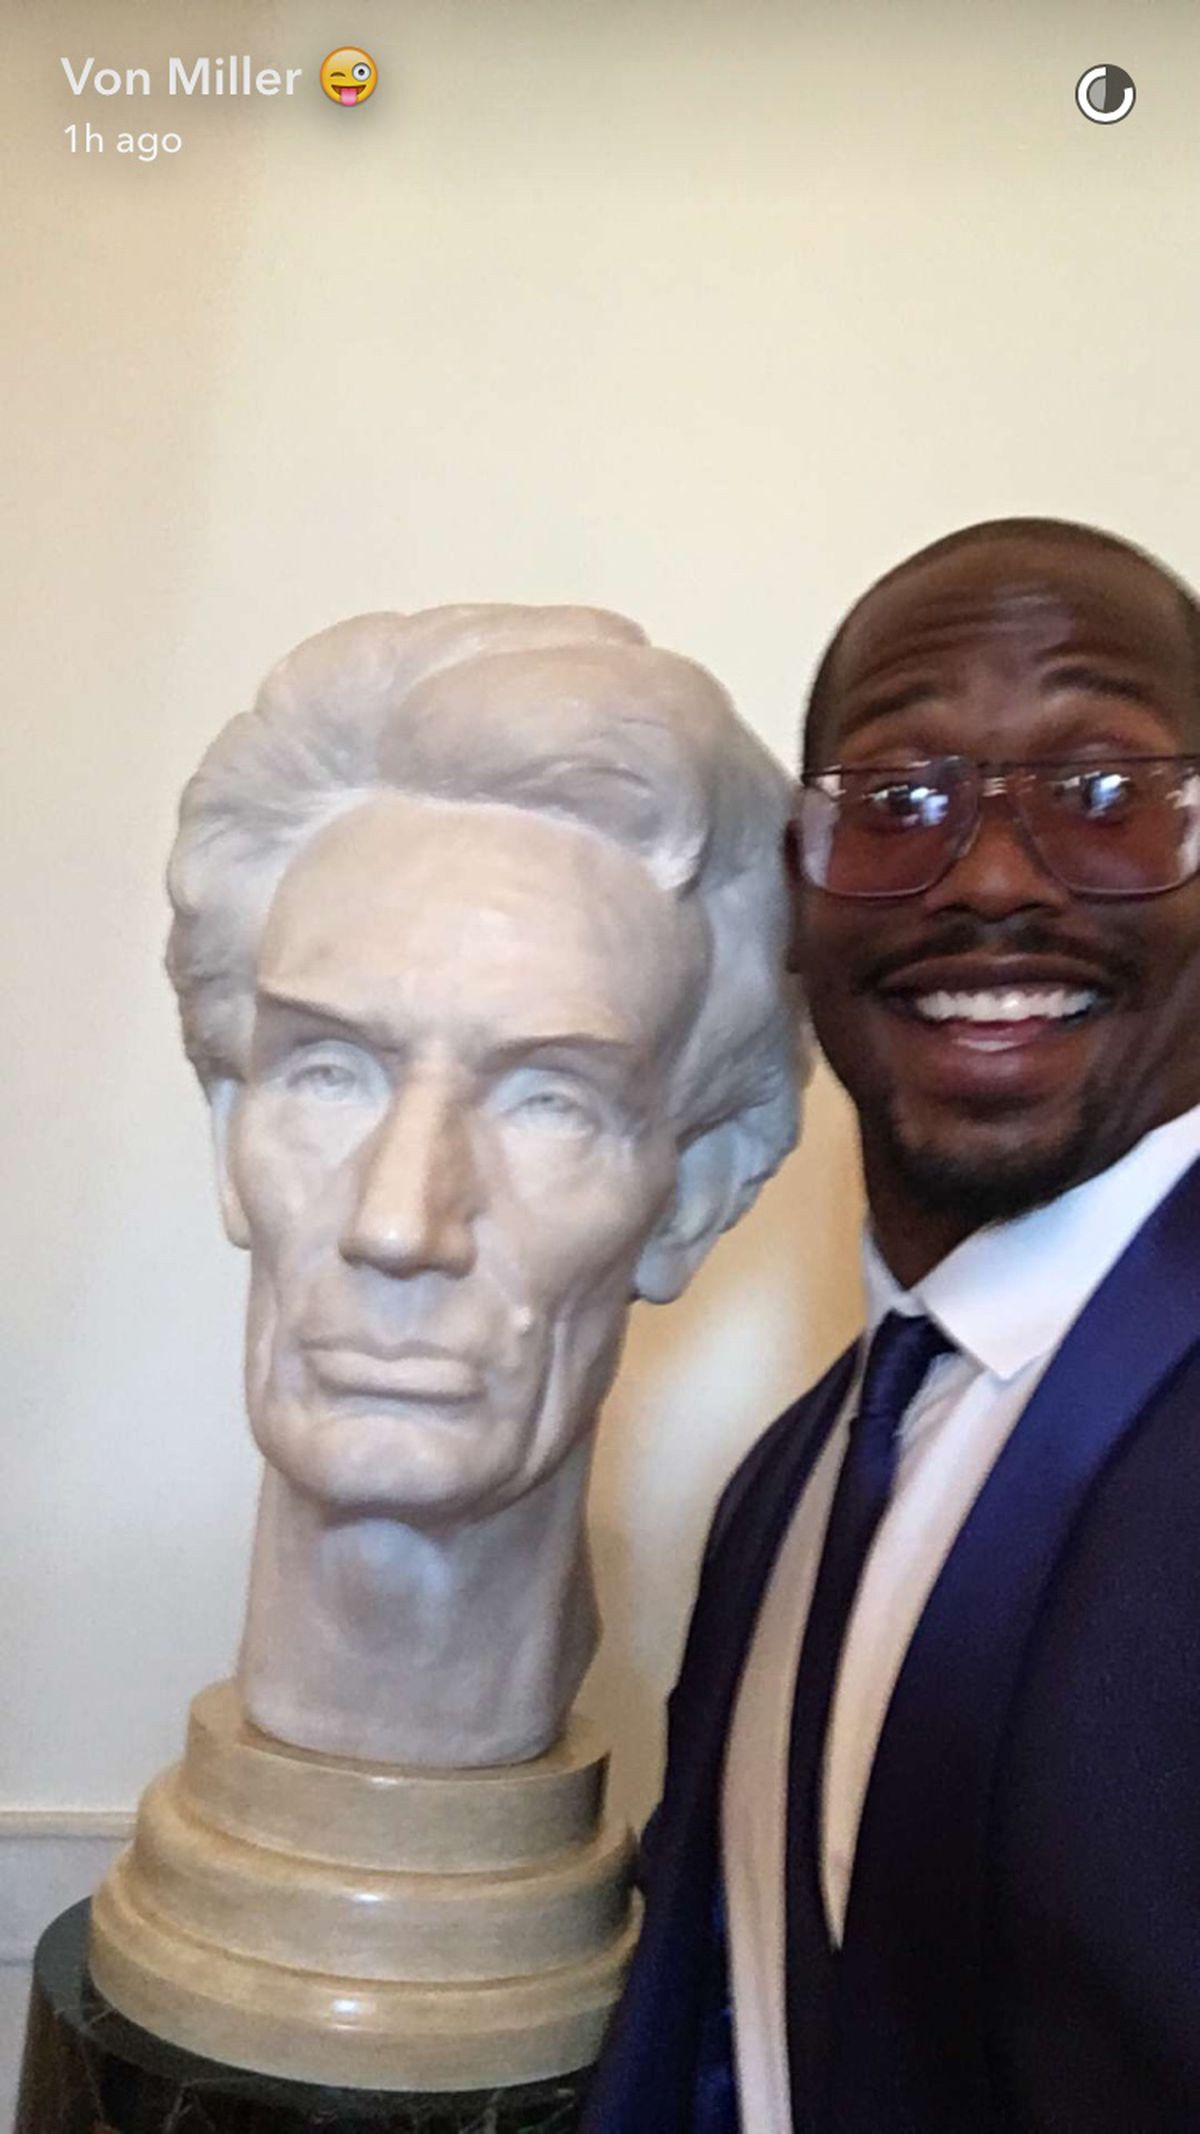 Super Bowl MVP Von Miller, who was documenting it all on Snapchat,  especially enjoyed the White House napkins and taking photos with artwork  he'd be flagged ...